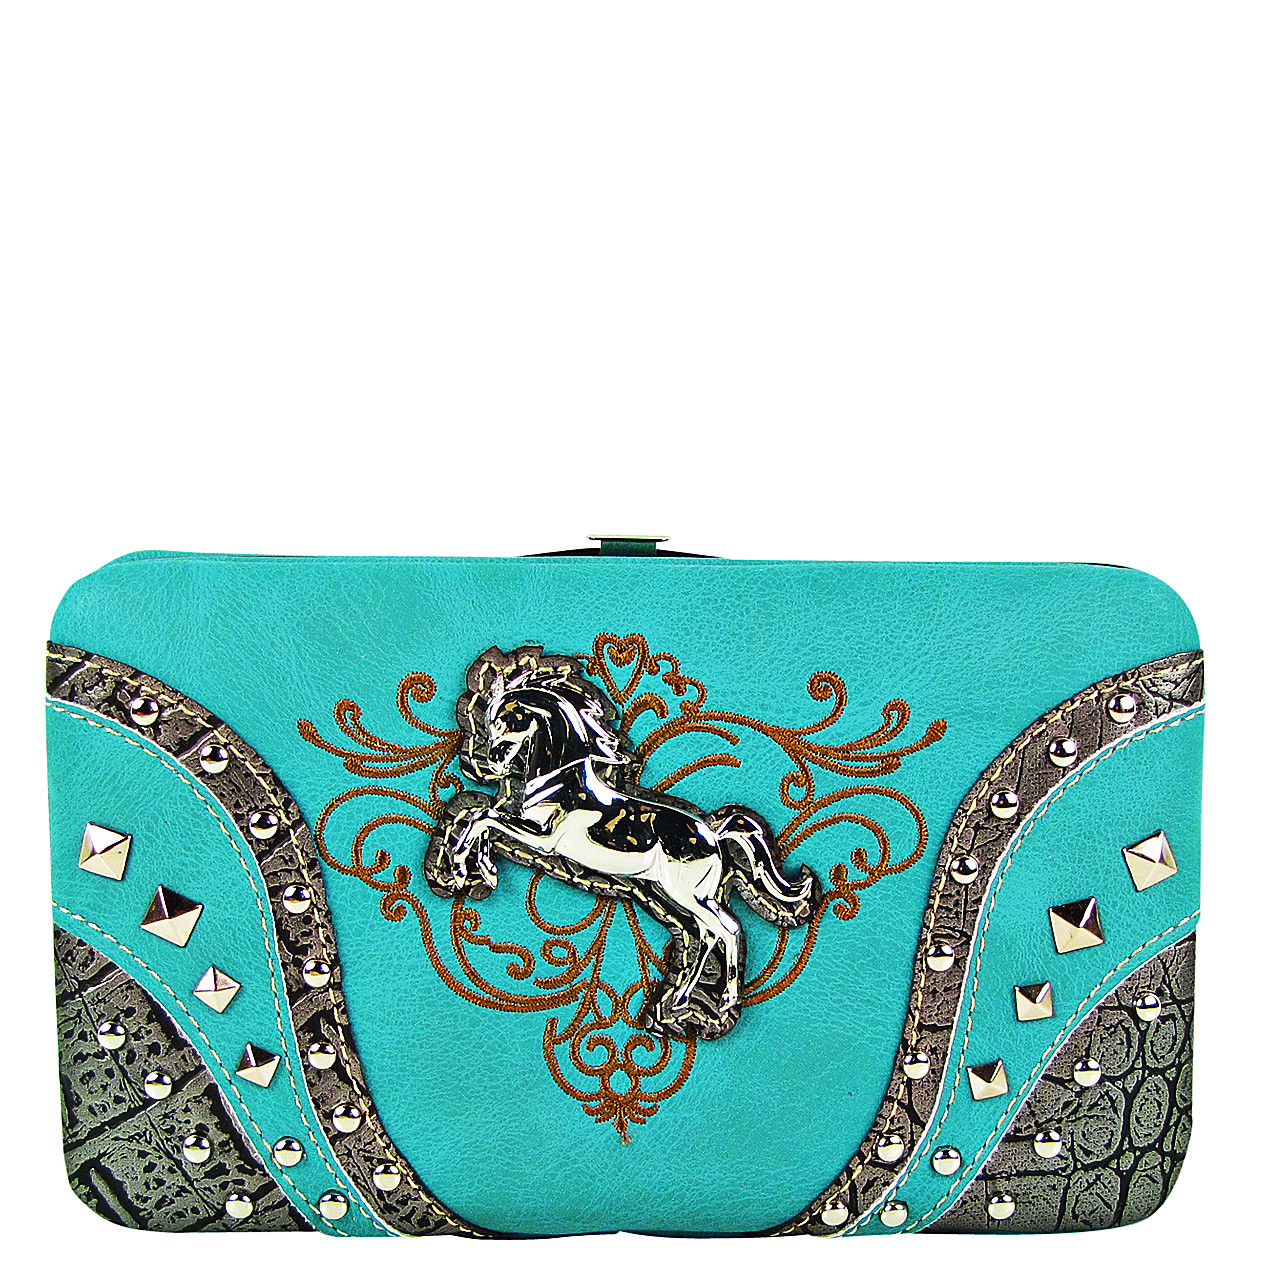 TURQUOISE STITCHED TOOLED STUDDED HORSE LOOK FLAT THICK WALLET FW2-12126TRQ